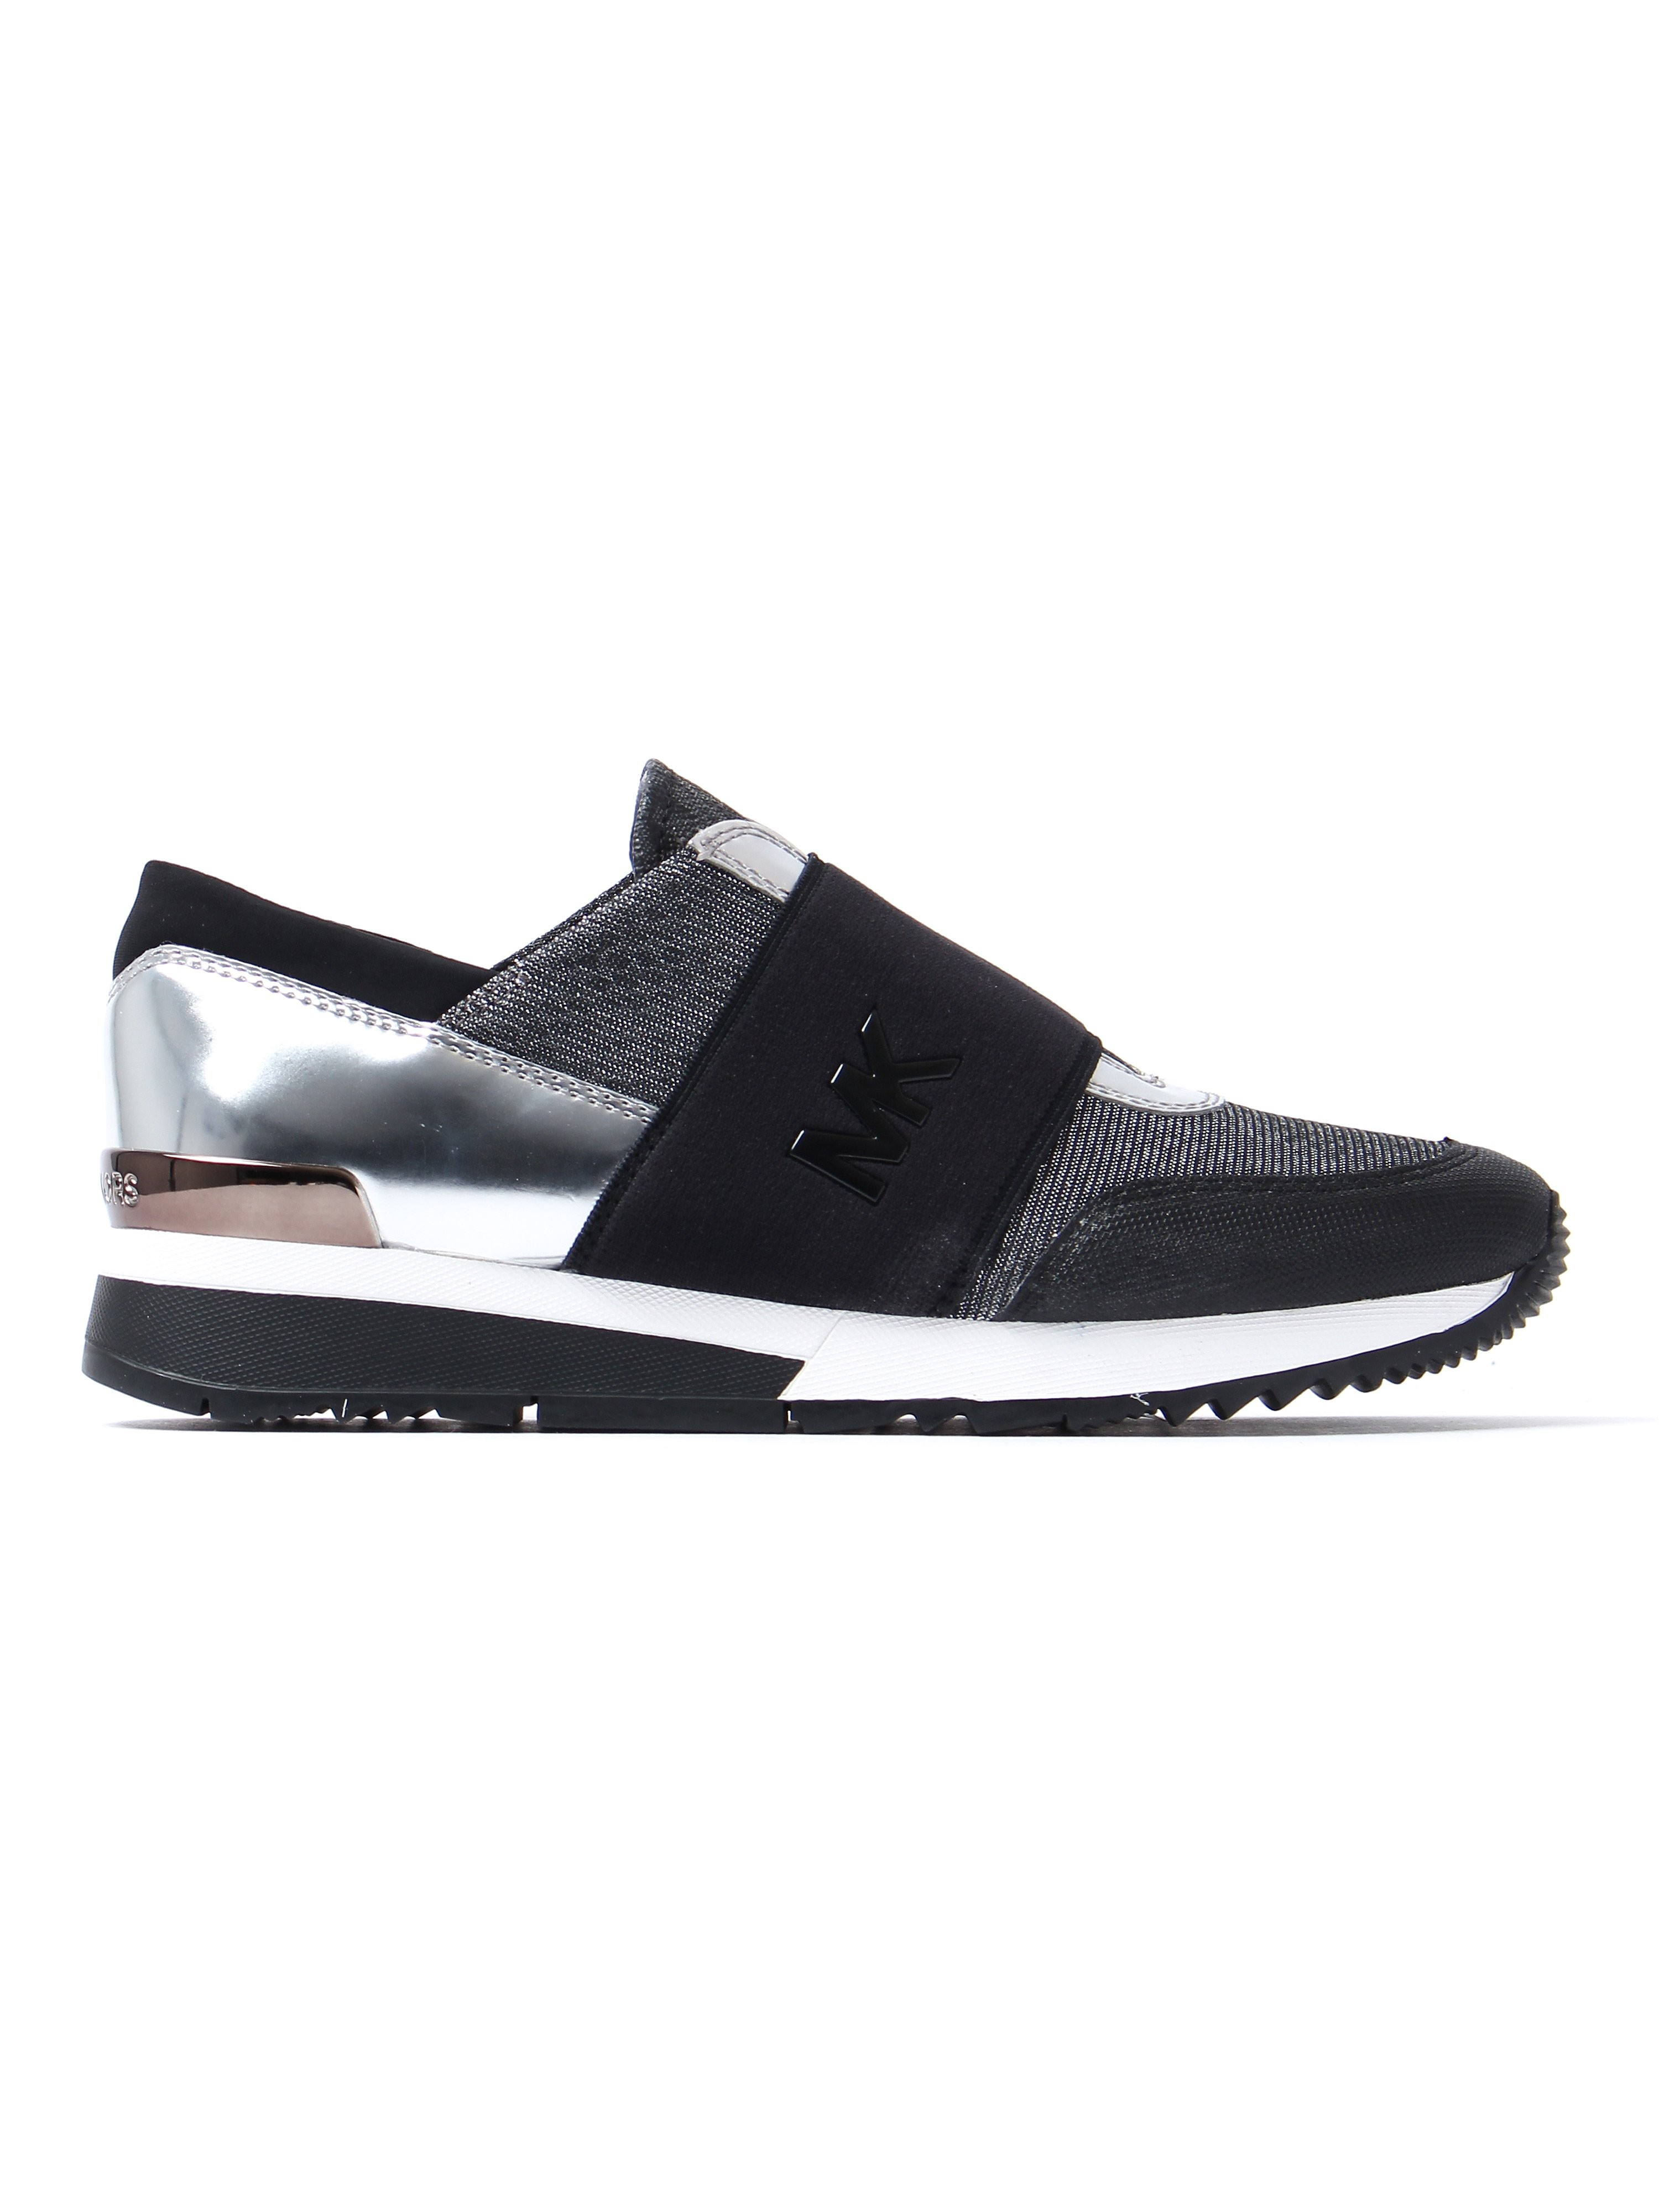 MICHAEL Michael Kors Women's MK Trainers - Black & Gun